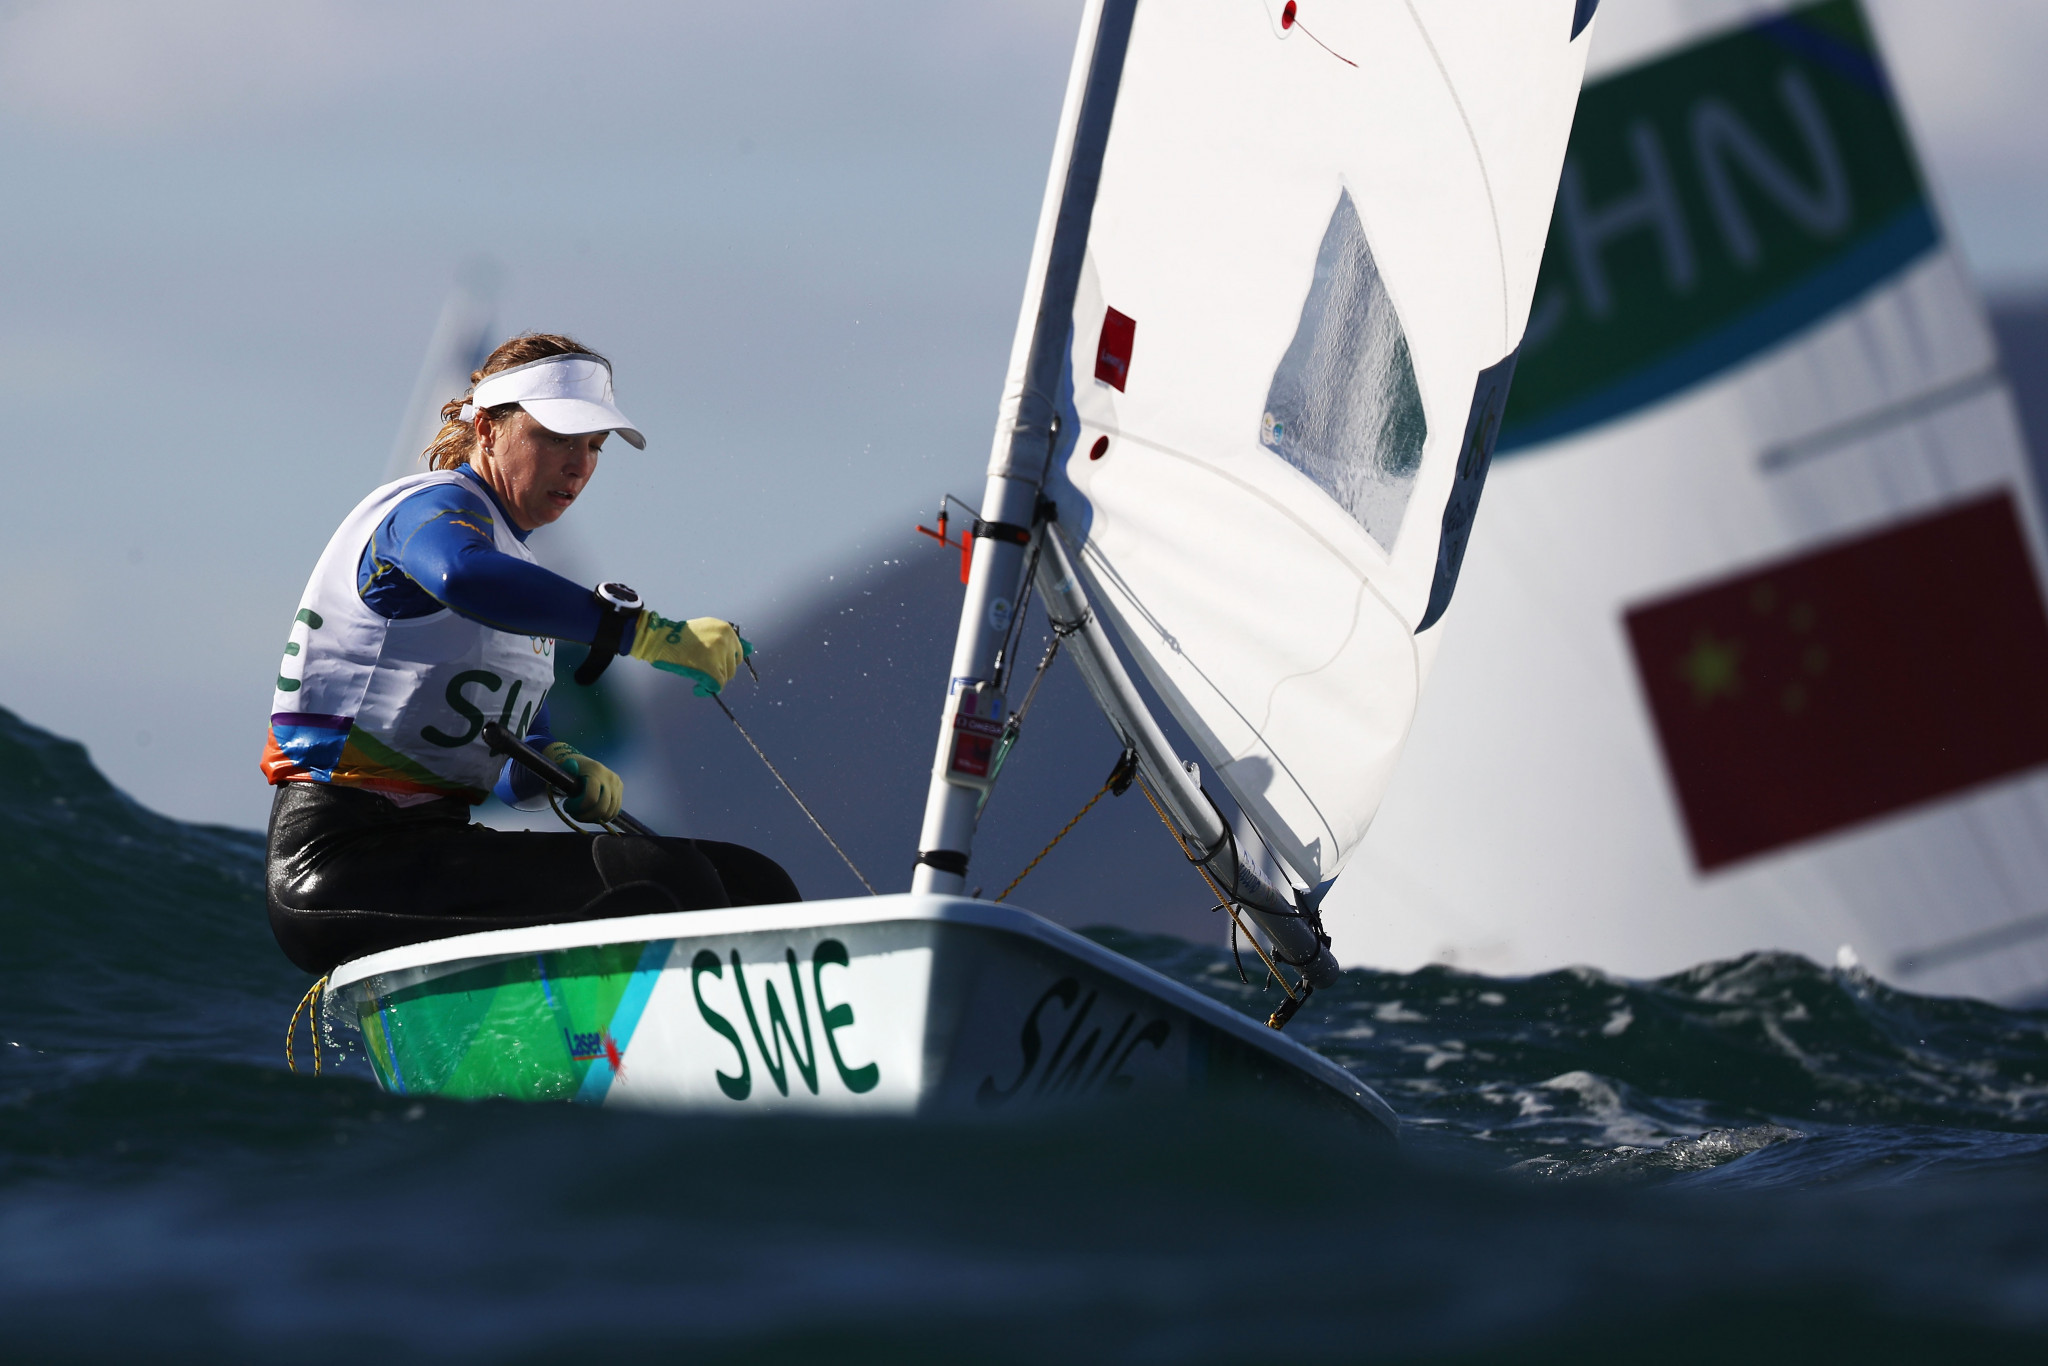 Olsson leads at ILCA Laser Radial Women's World Championship